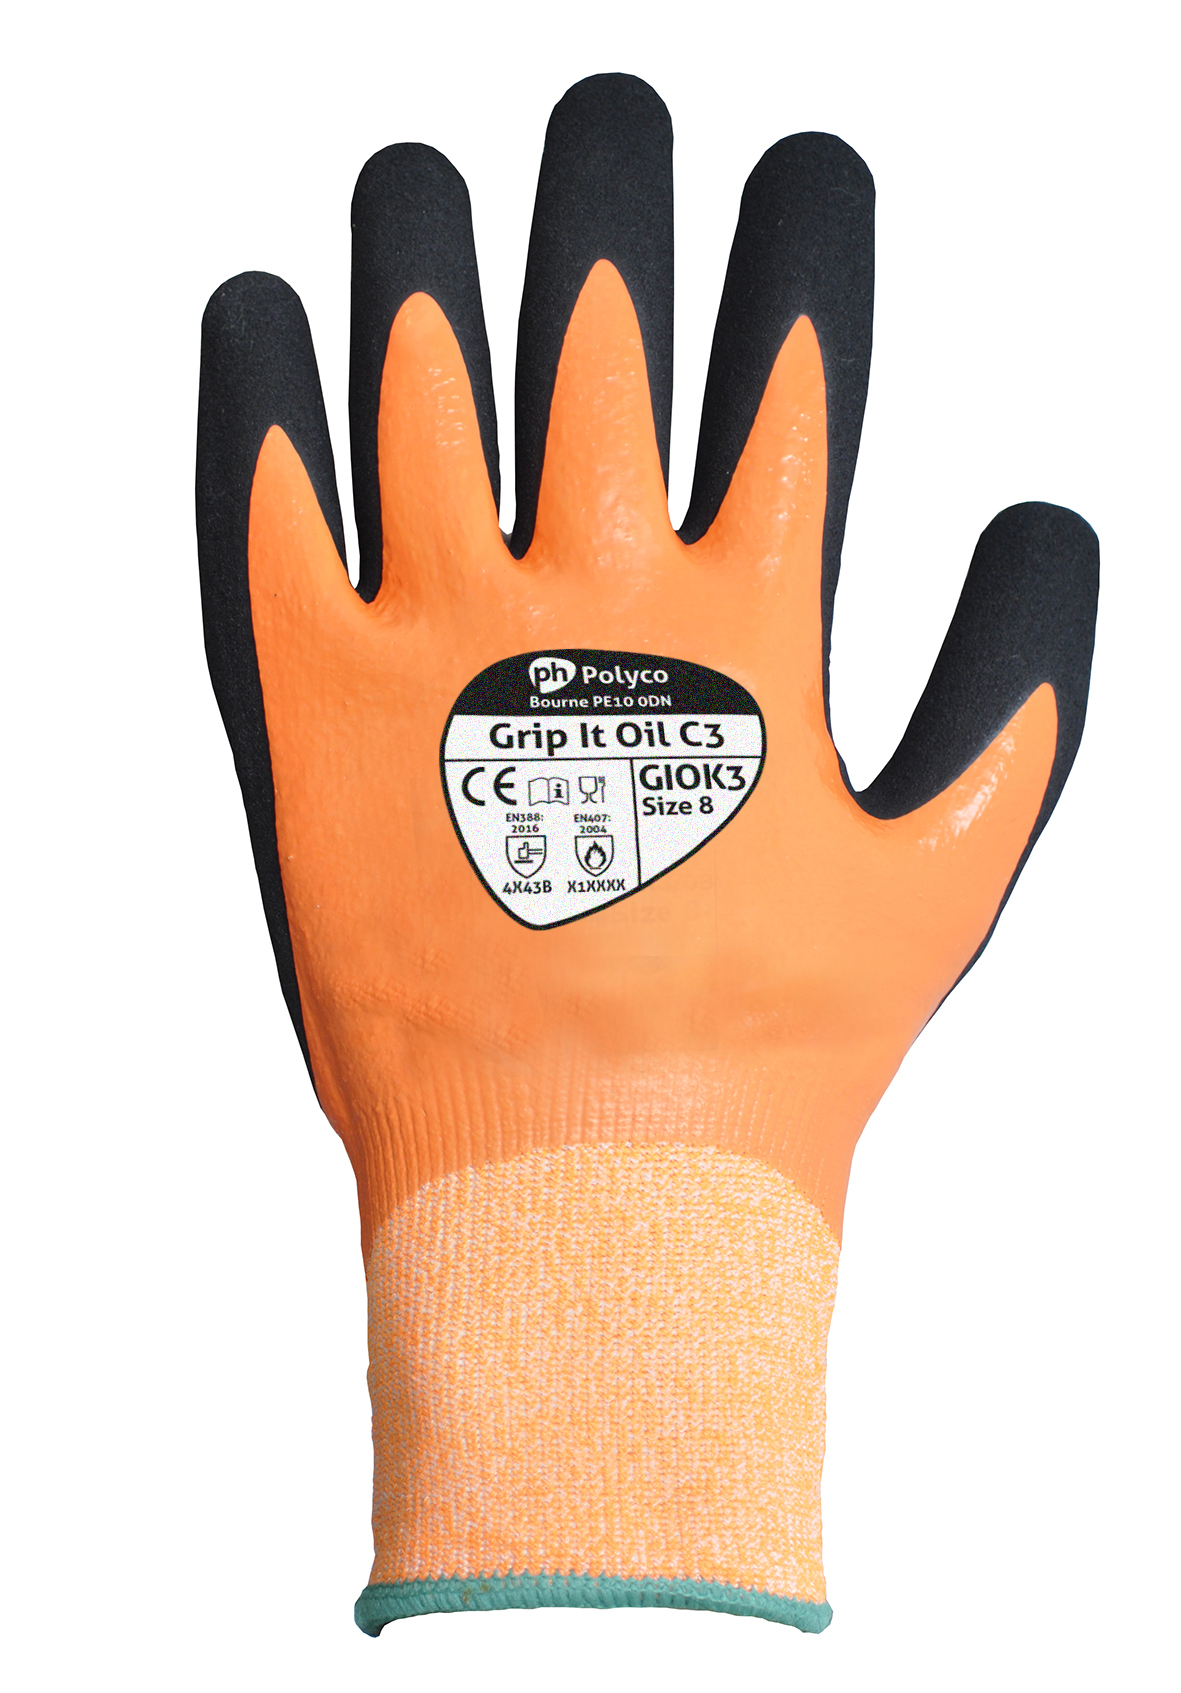 Polyco Grip It Oil C5 GIOK//07 cut resistant gloves dual nitrile size 7 x 2 pair